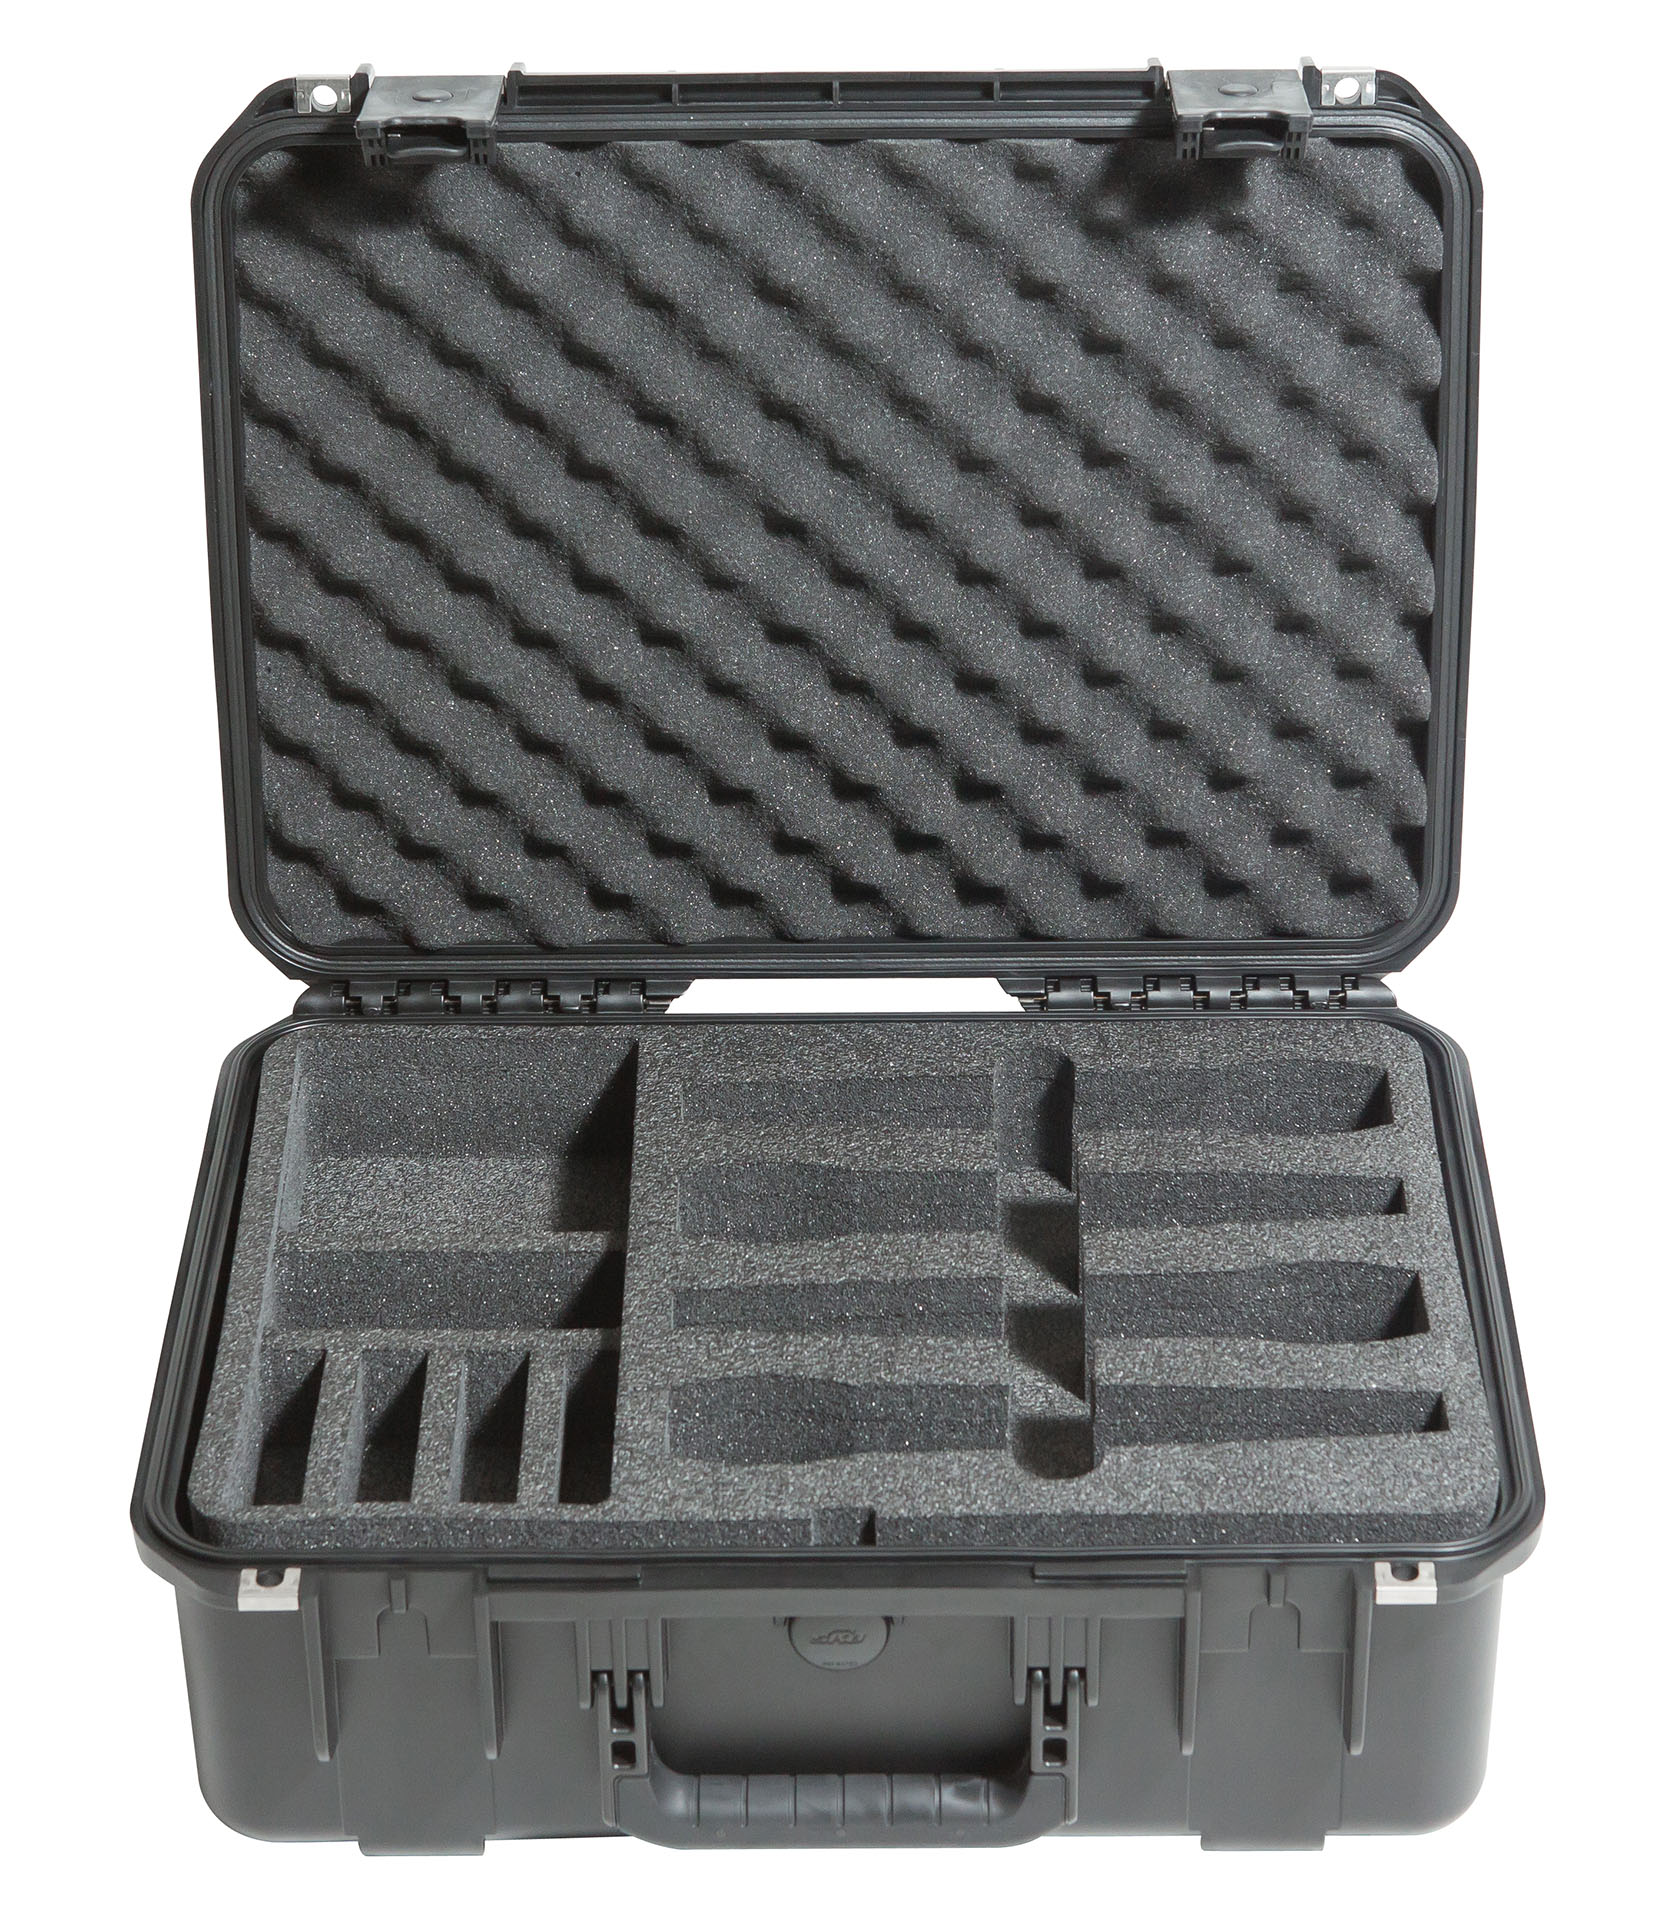 Buy skb - 3i 1813 7WMCiSeries Injection Molded Case for